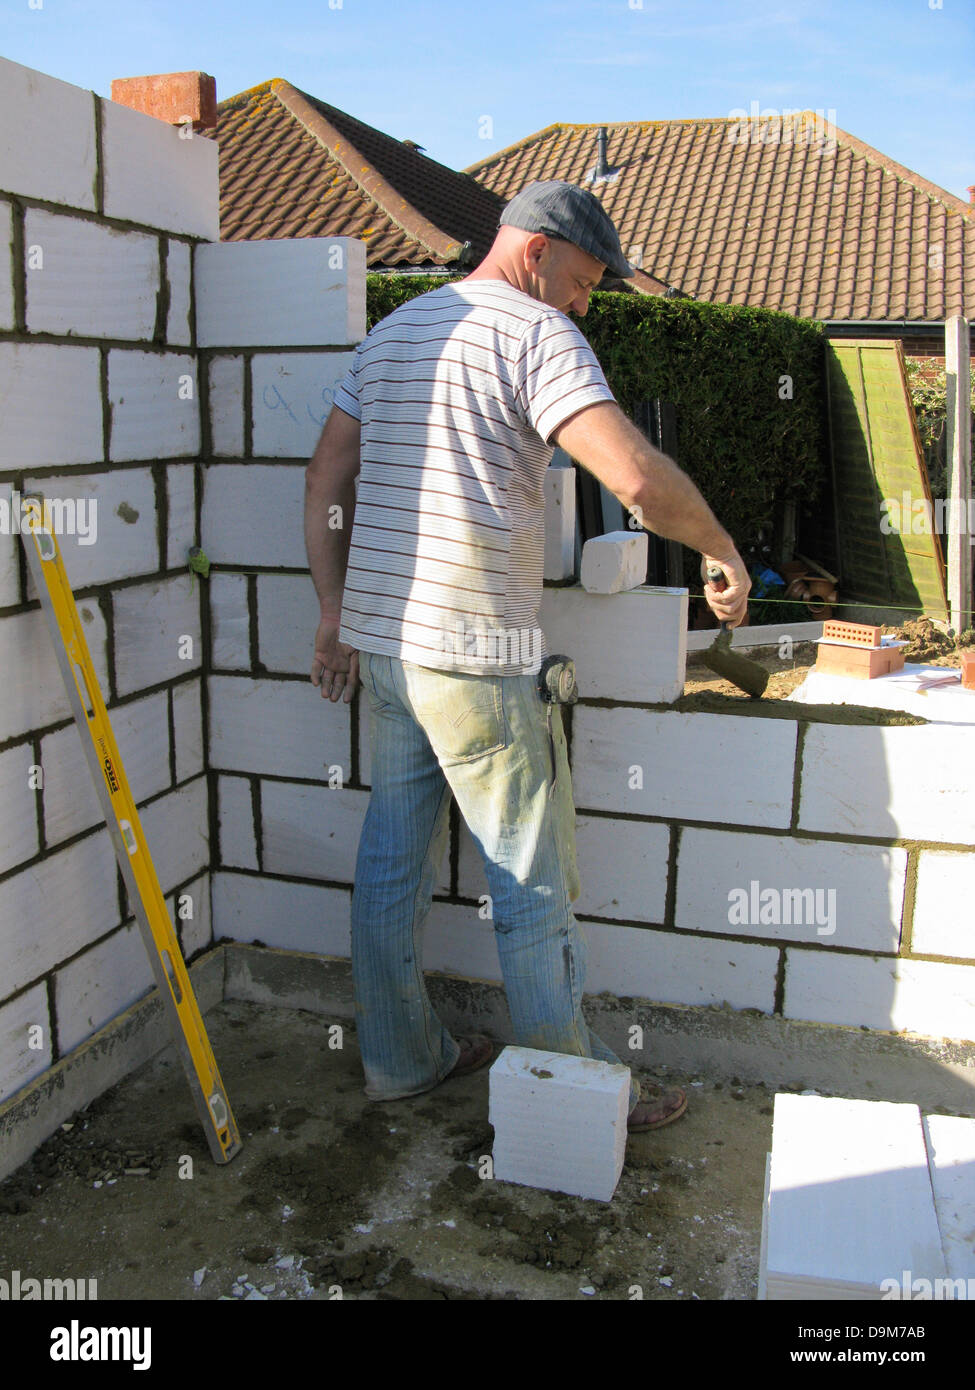 Builder / construction worker cementing a wall of thermalite